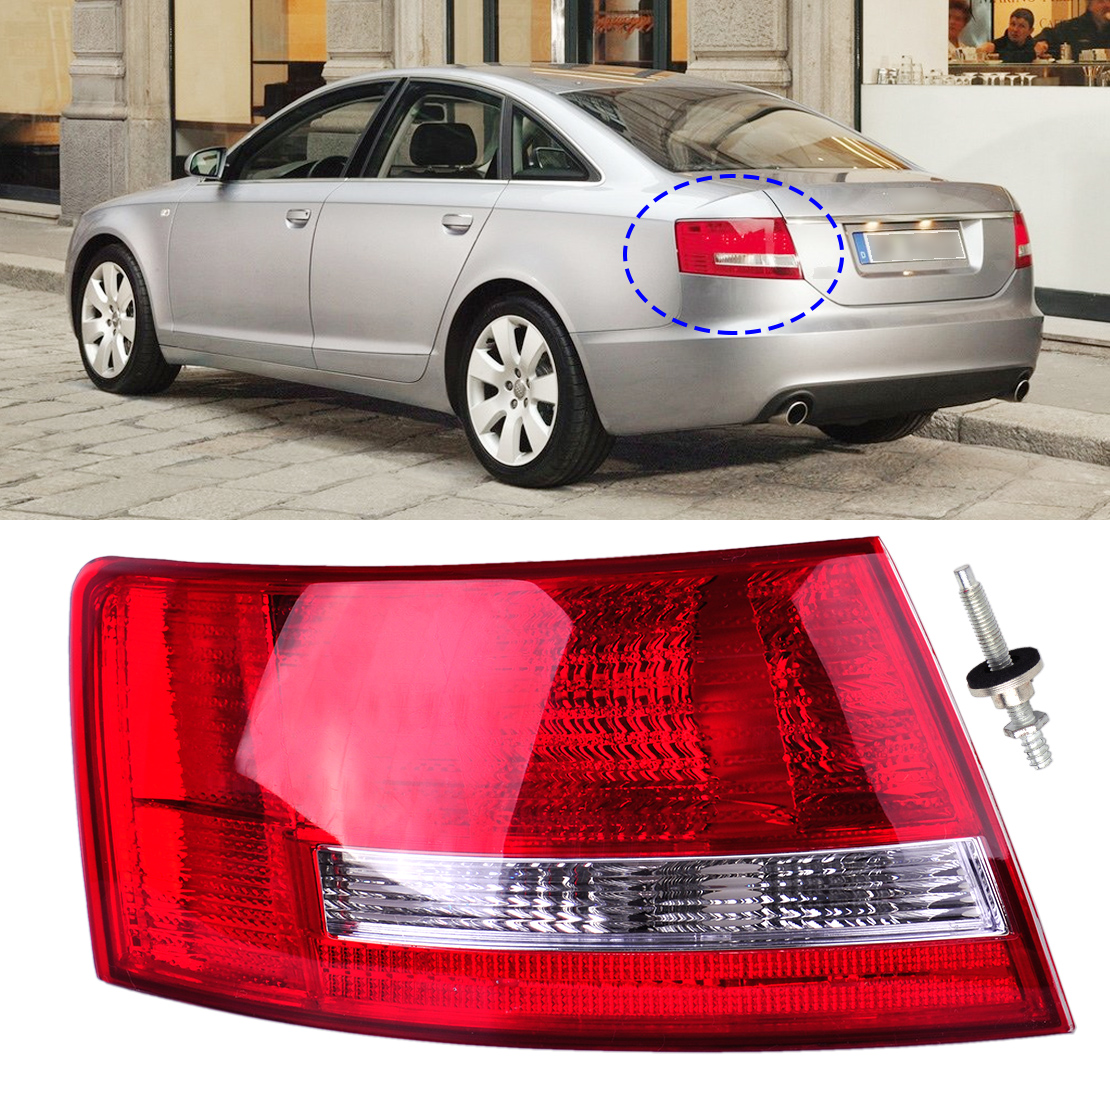 CITALL Left Tail Light Assembly Lamp Housing without Bulb for Audi A6 Quattro Sedan 2005 2006 2007 2008 4F5945095L 4F5945095D free shipping for skoda octavia sedan a5 2005 2006 2007 2008 right side rear lamp tail light